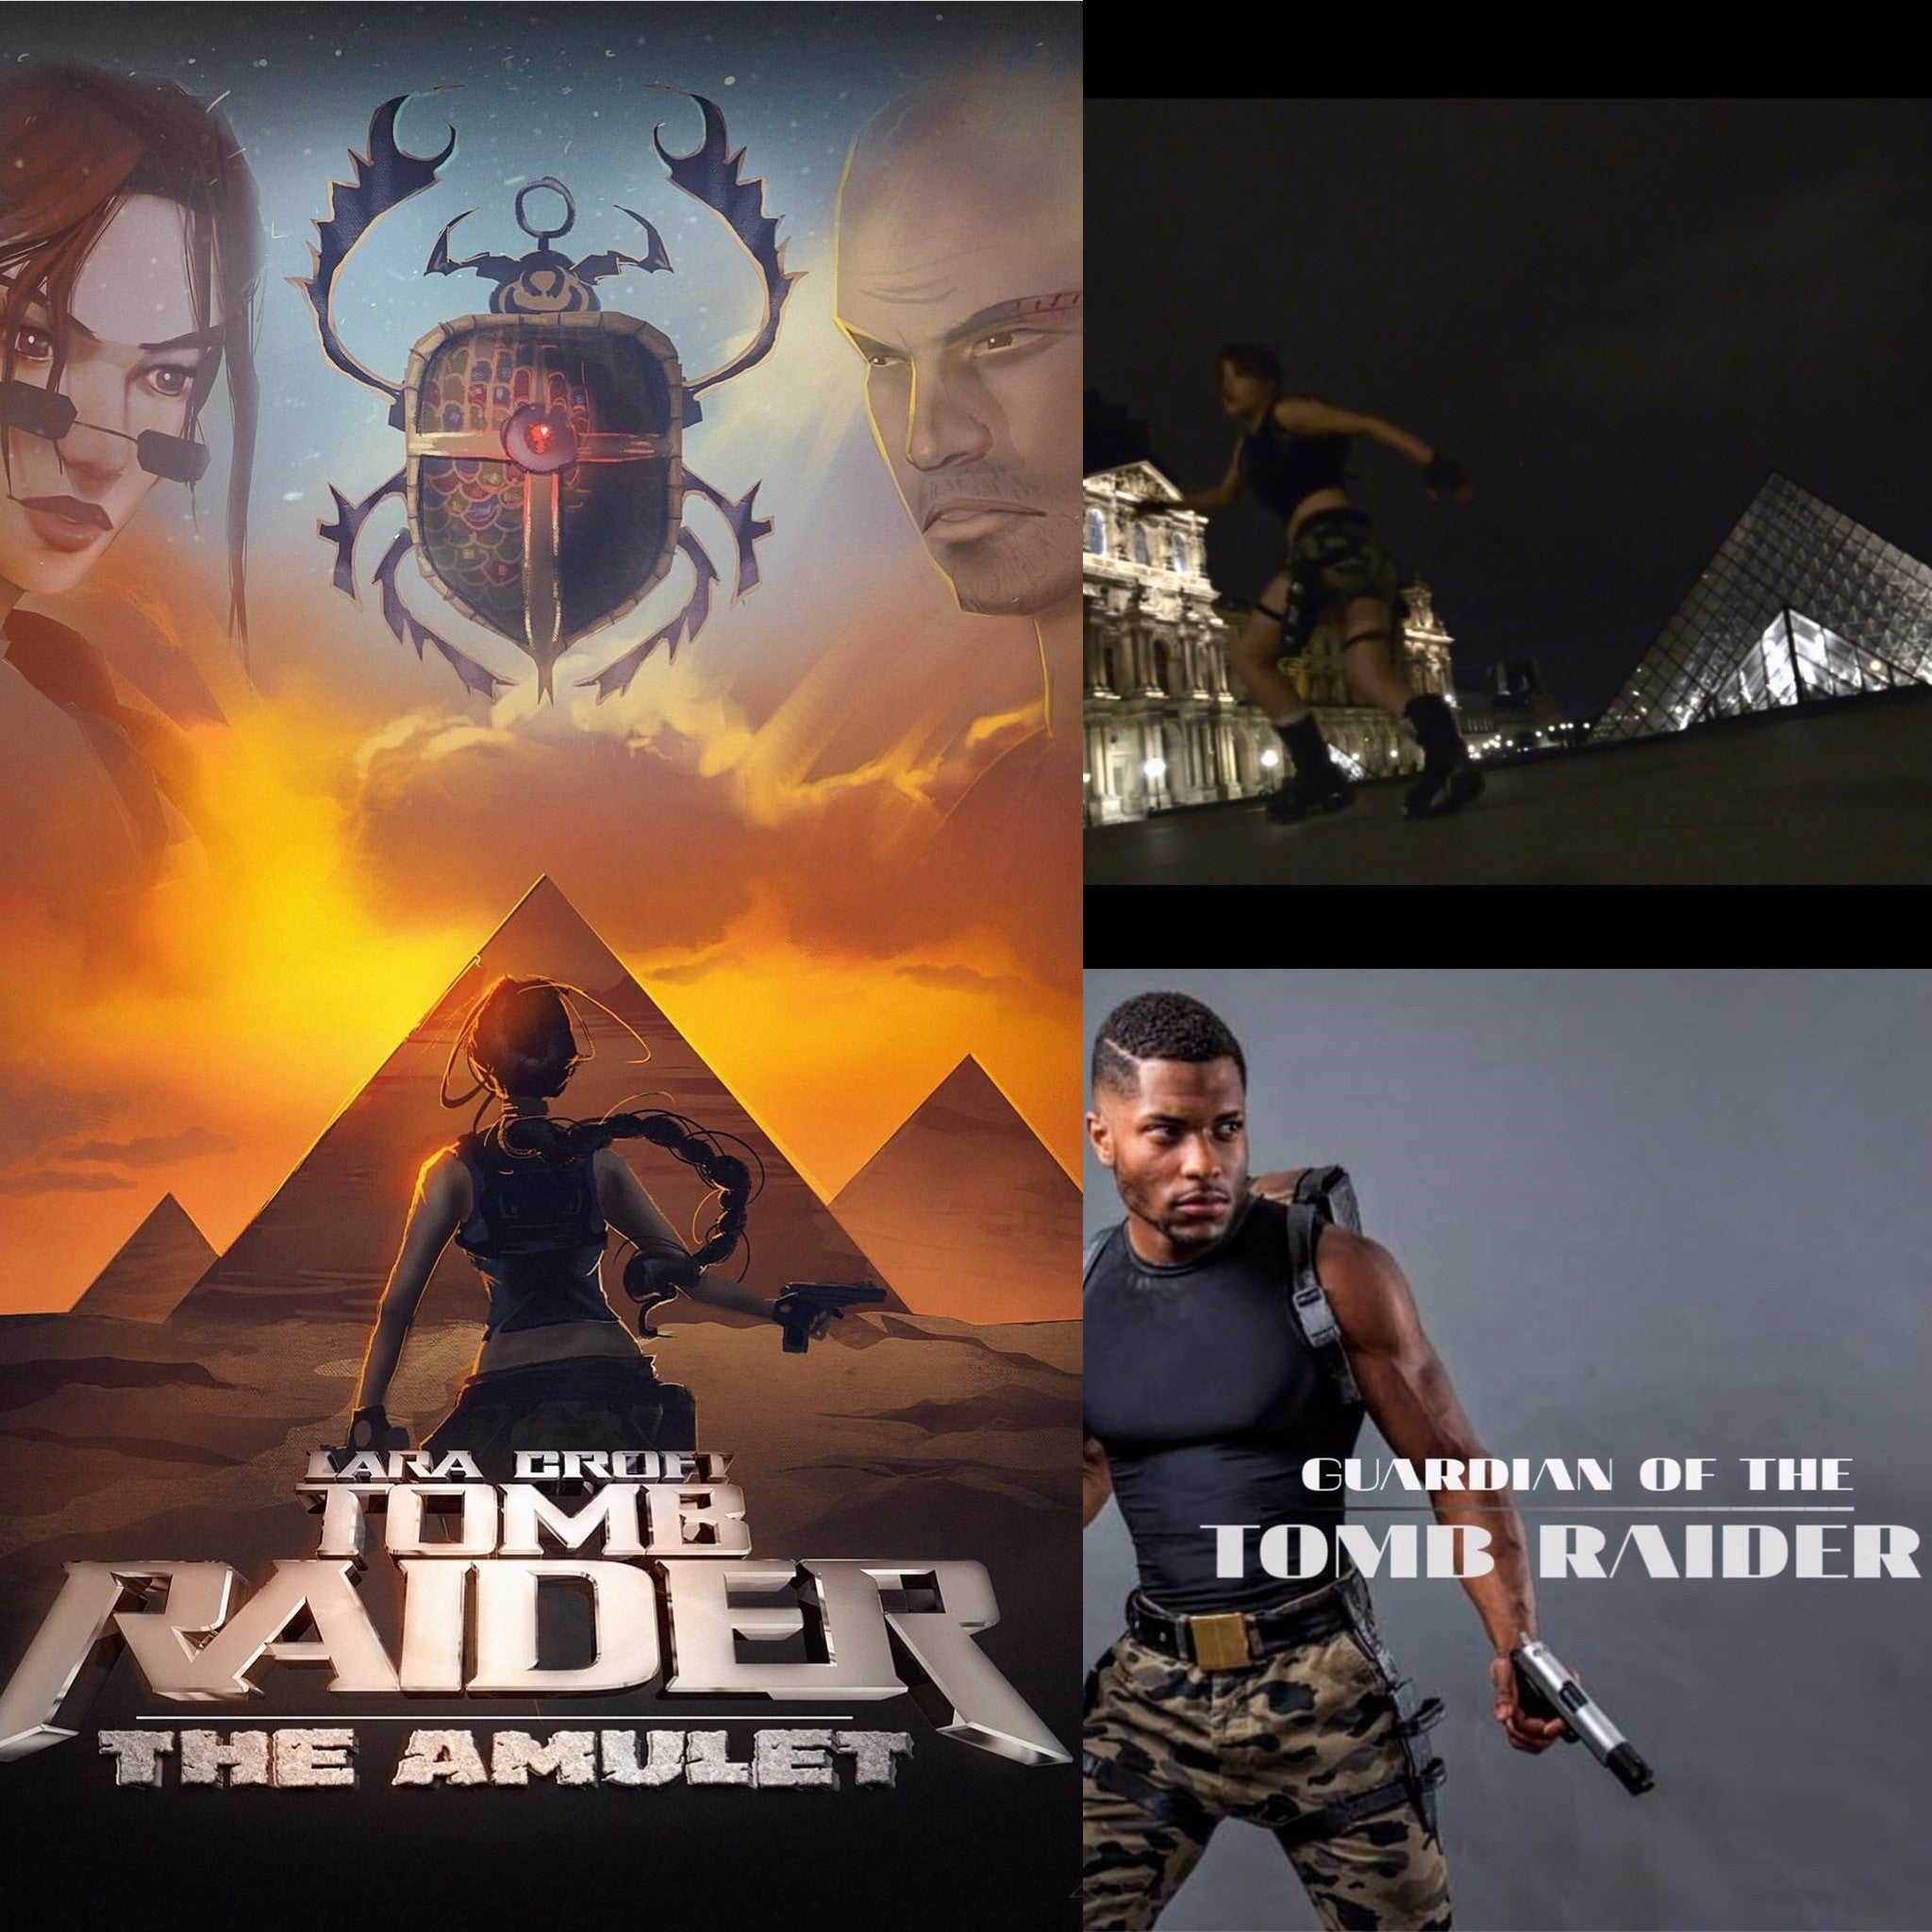 A collage of different Tomb Raider fan film movie posters